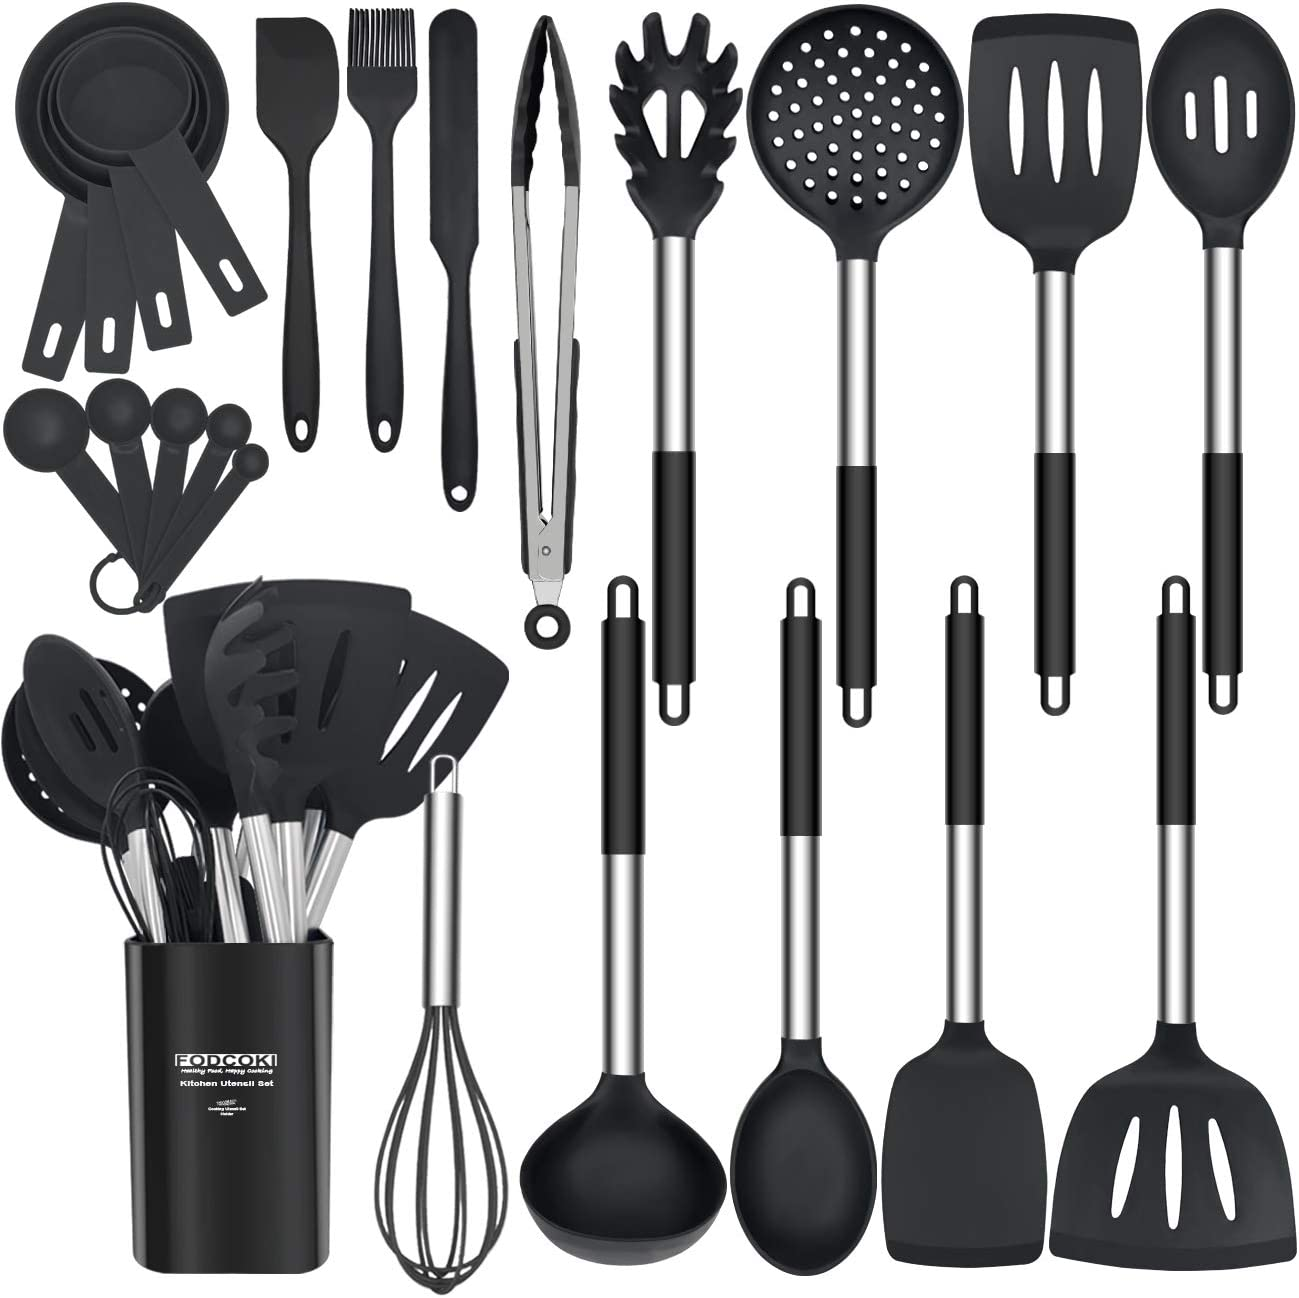 Silicone Cooking Utensils Set, 23pcs Kitchen Utensils Sets for Cooking with Stainless Steel Handle, Spatula, Measruing Tools, Holder, Non-stick Heat-Resistant Cookware Utensil by FODCOKI, Black